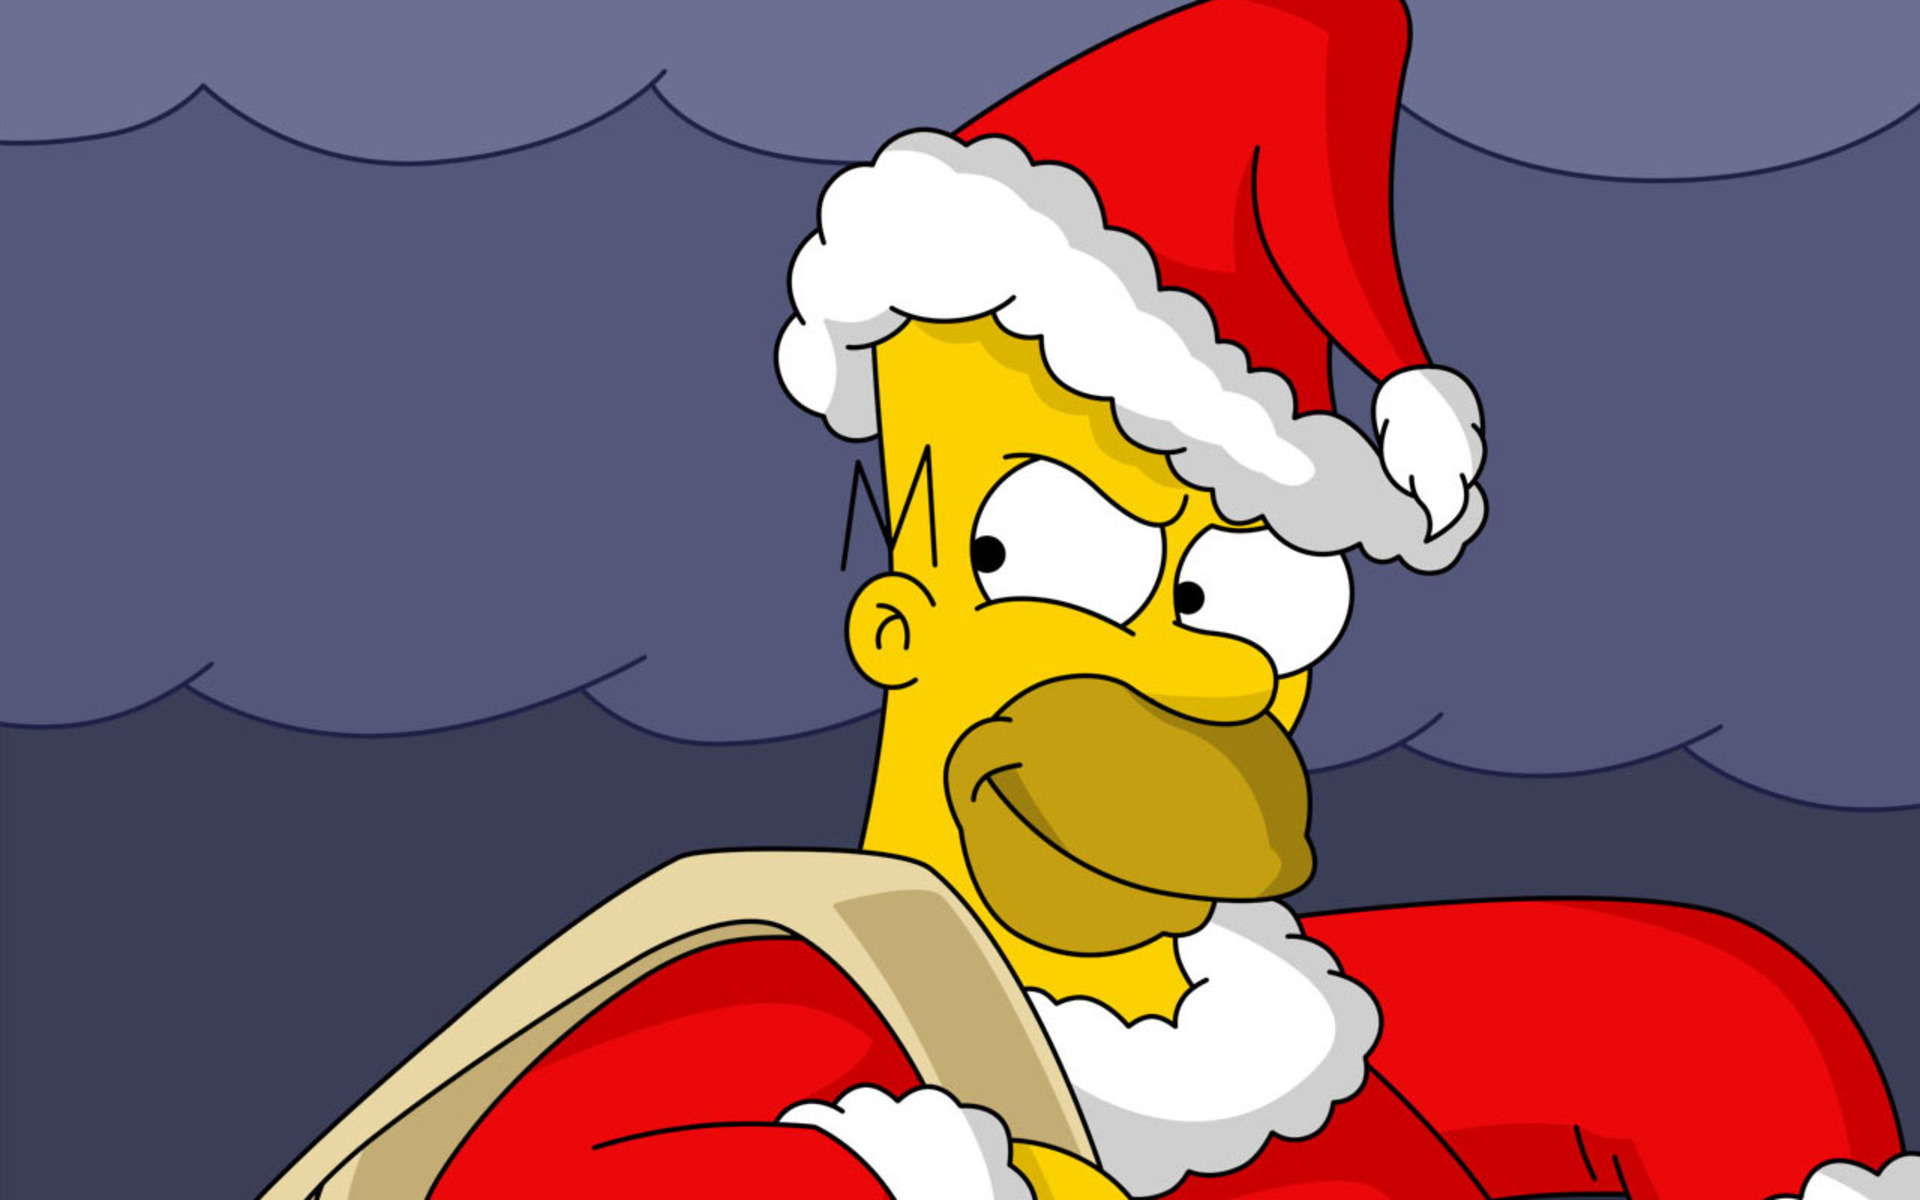 Simpsons Christmas Windows 8 Wallpaper HD 1920x1200